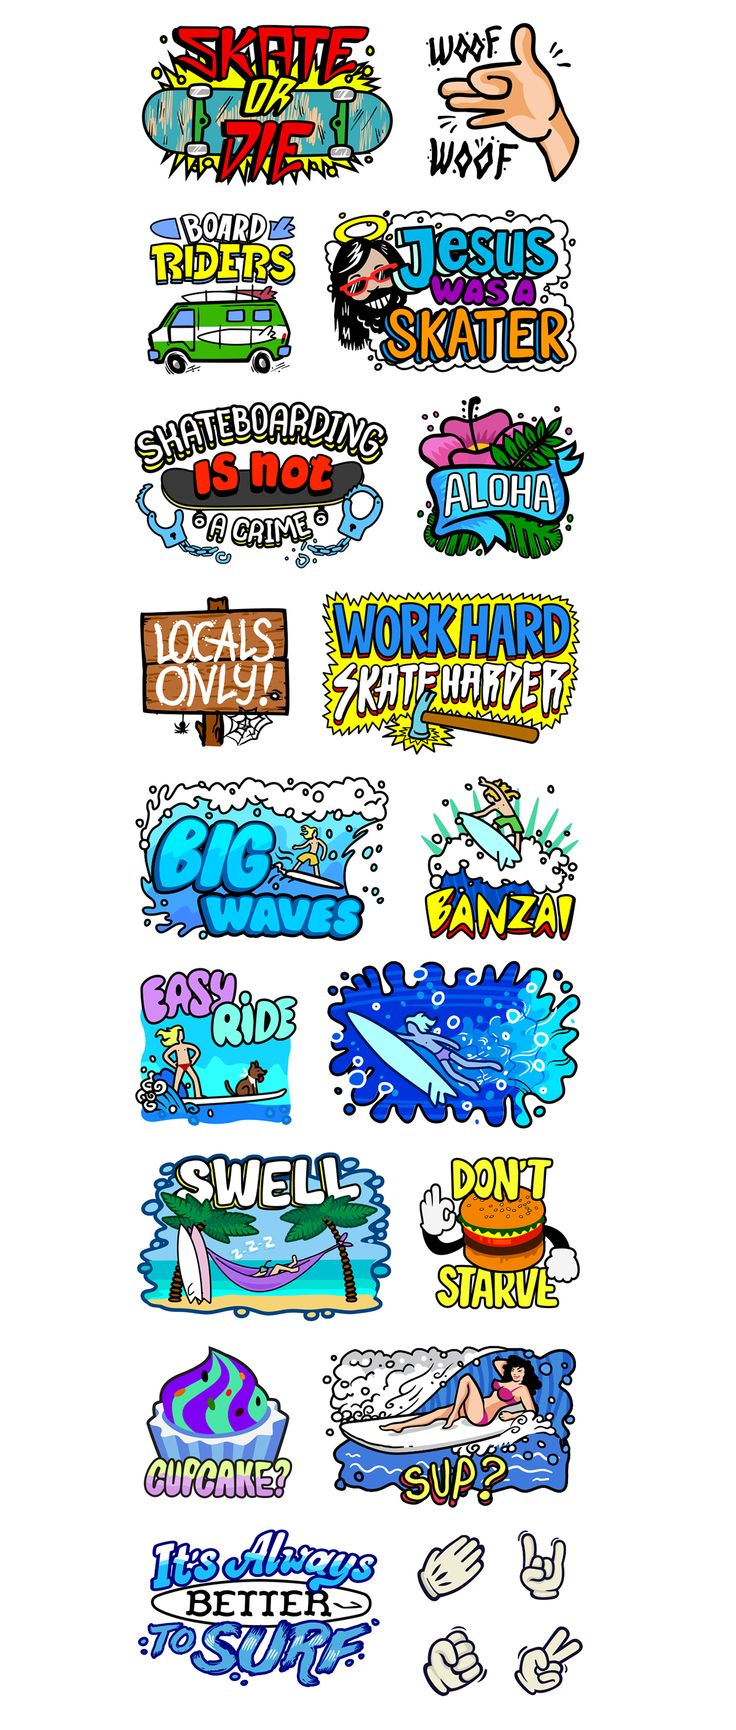 Viber Extreme Stickers pack on Behance